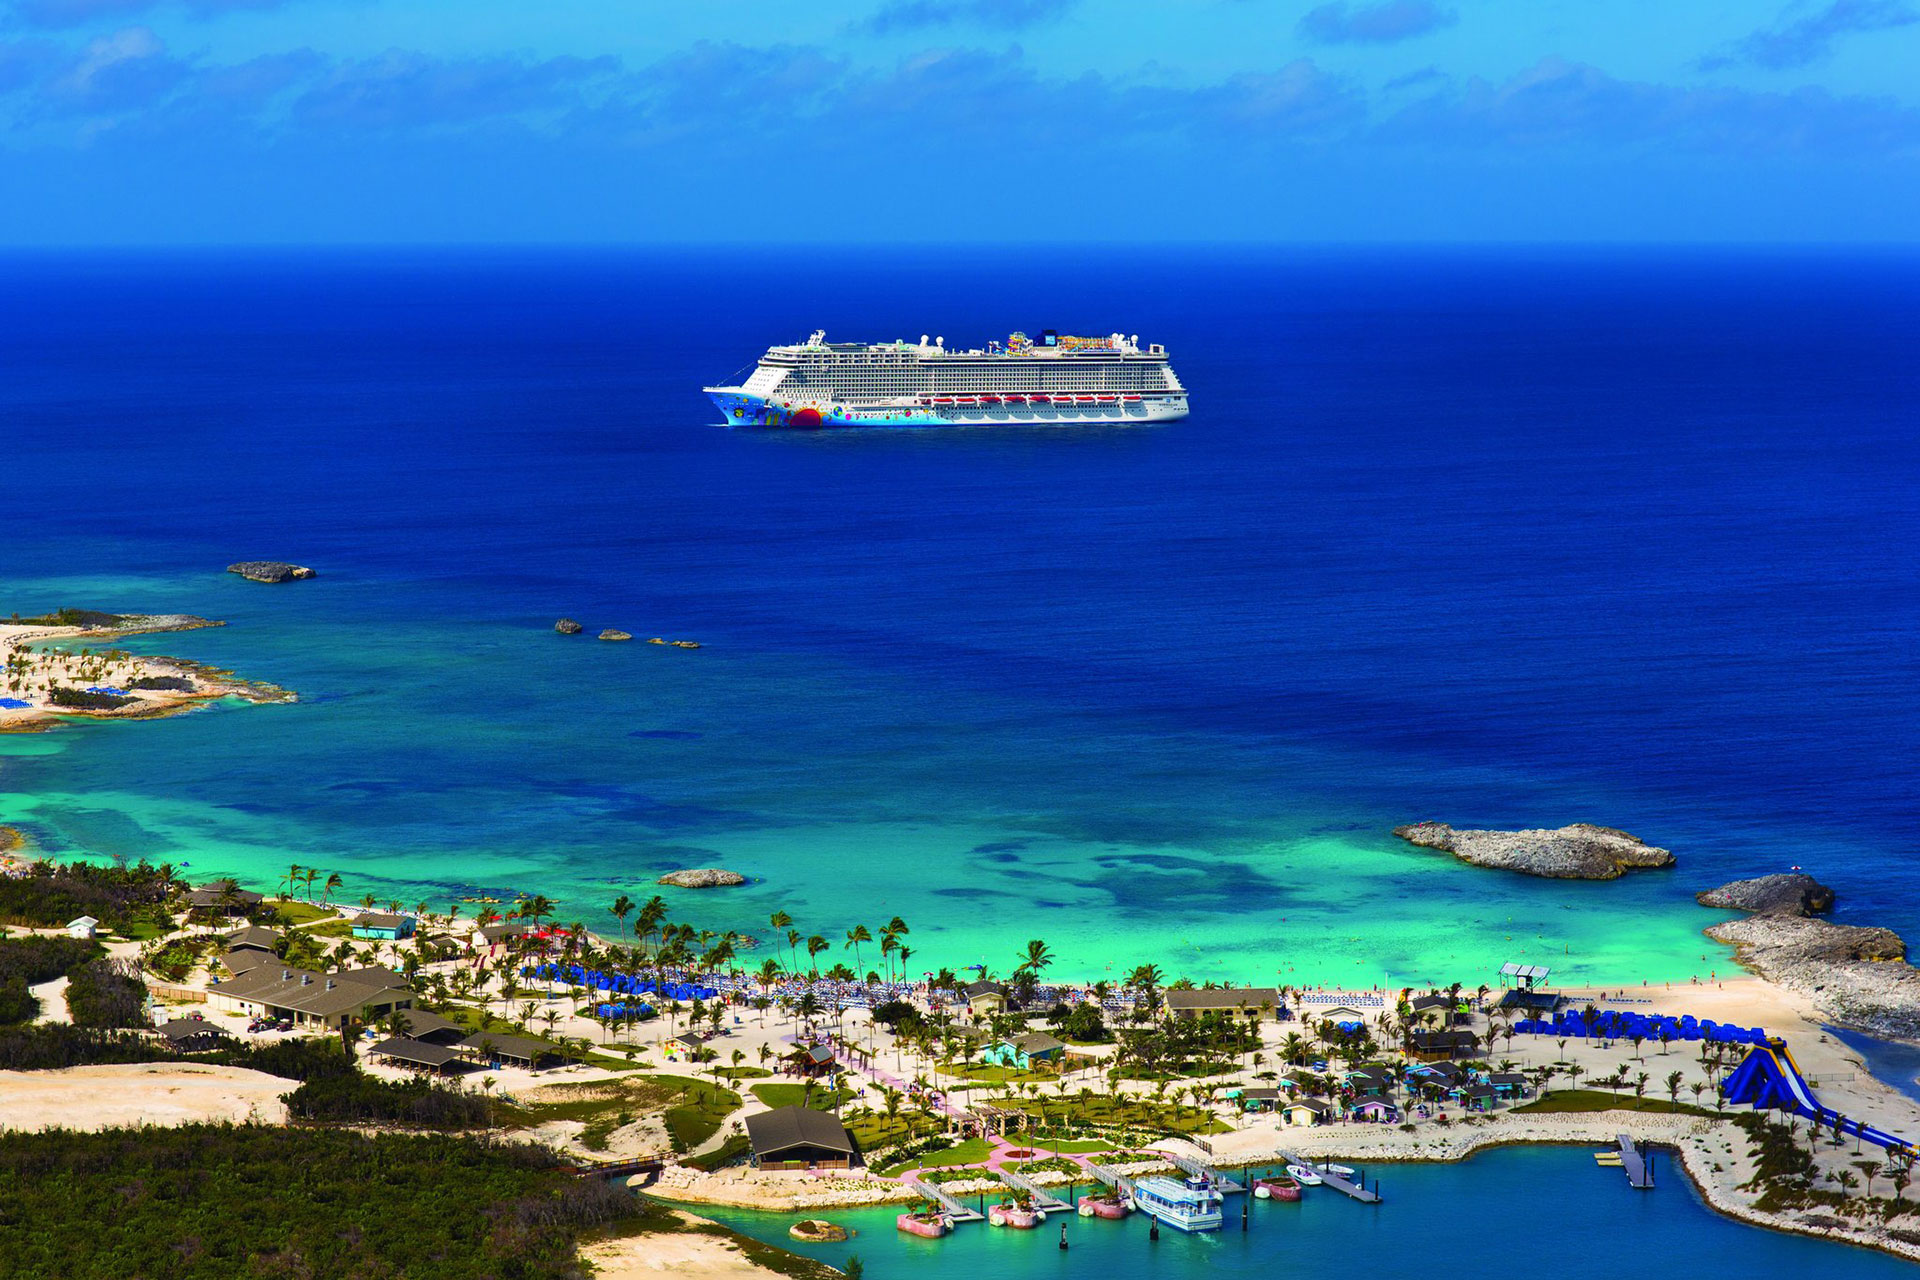 Norwegian's Great Stirrup Cay